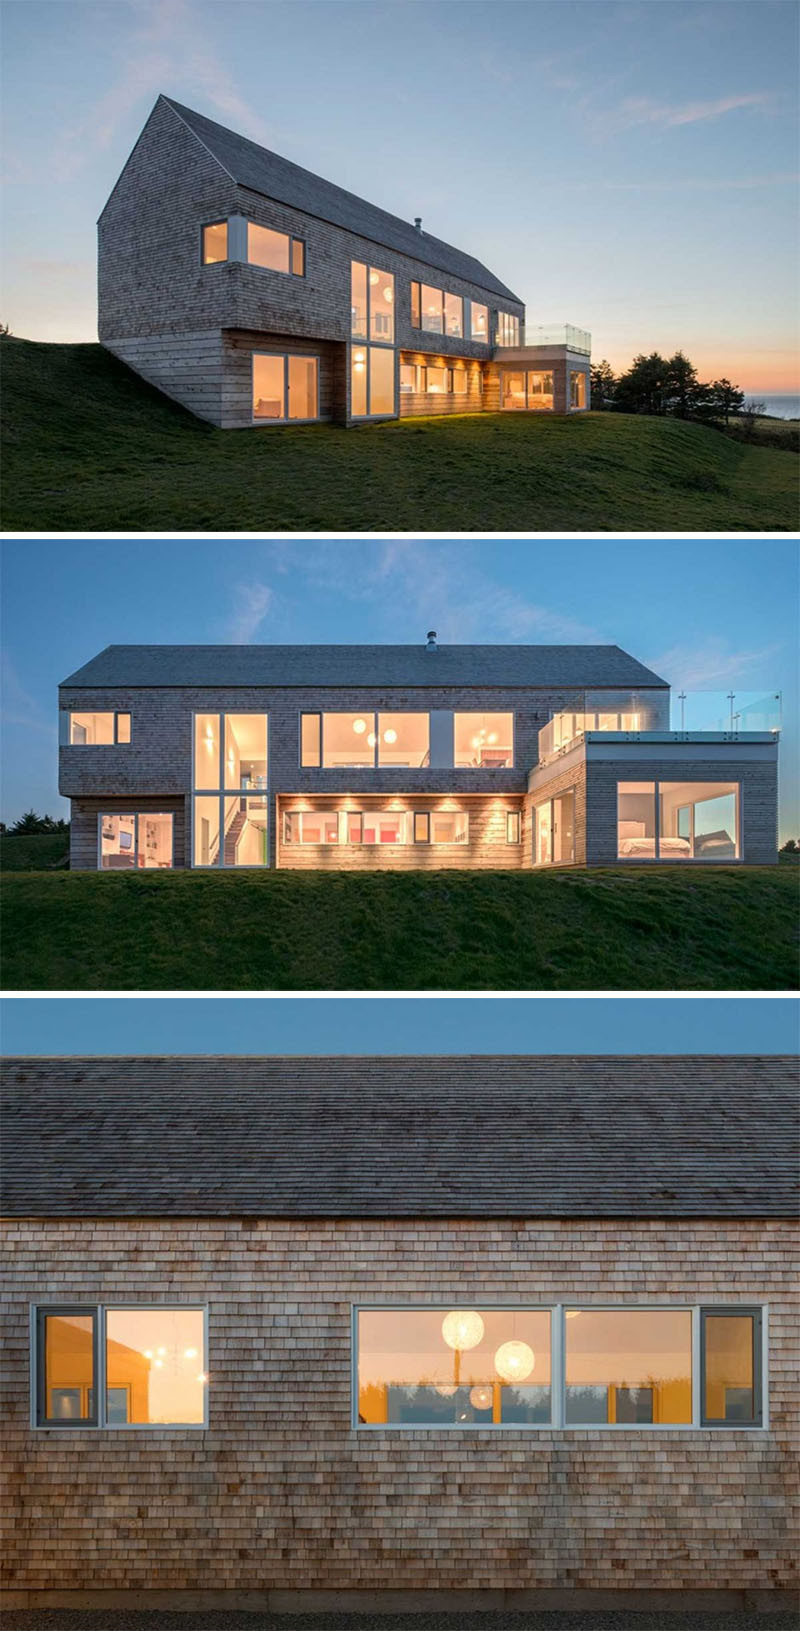 13 Examples Of Modern Houses With Wooden Shingles // This home covered in shingles has views of the ocean and Inverness in Nova Scotia, Canada.